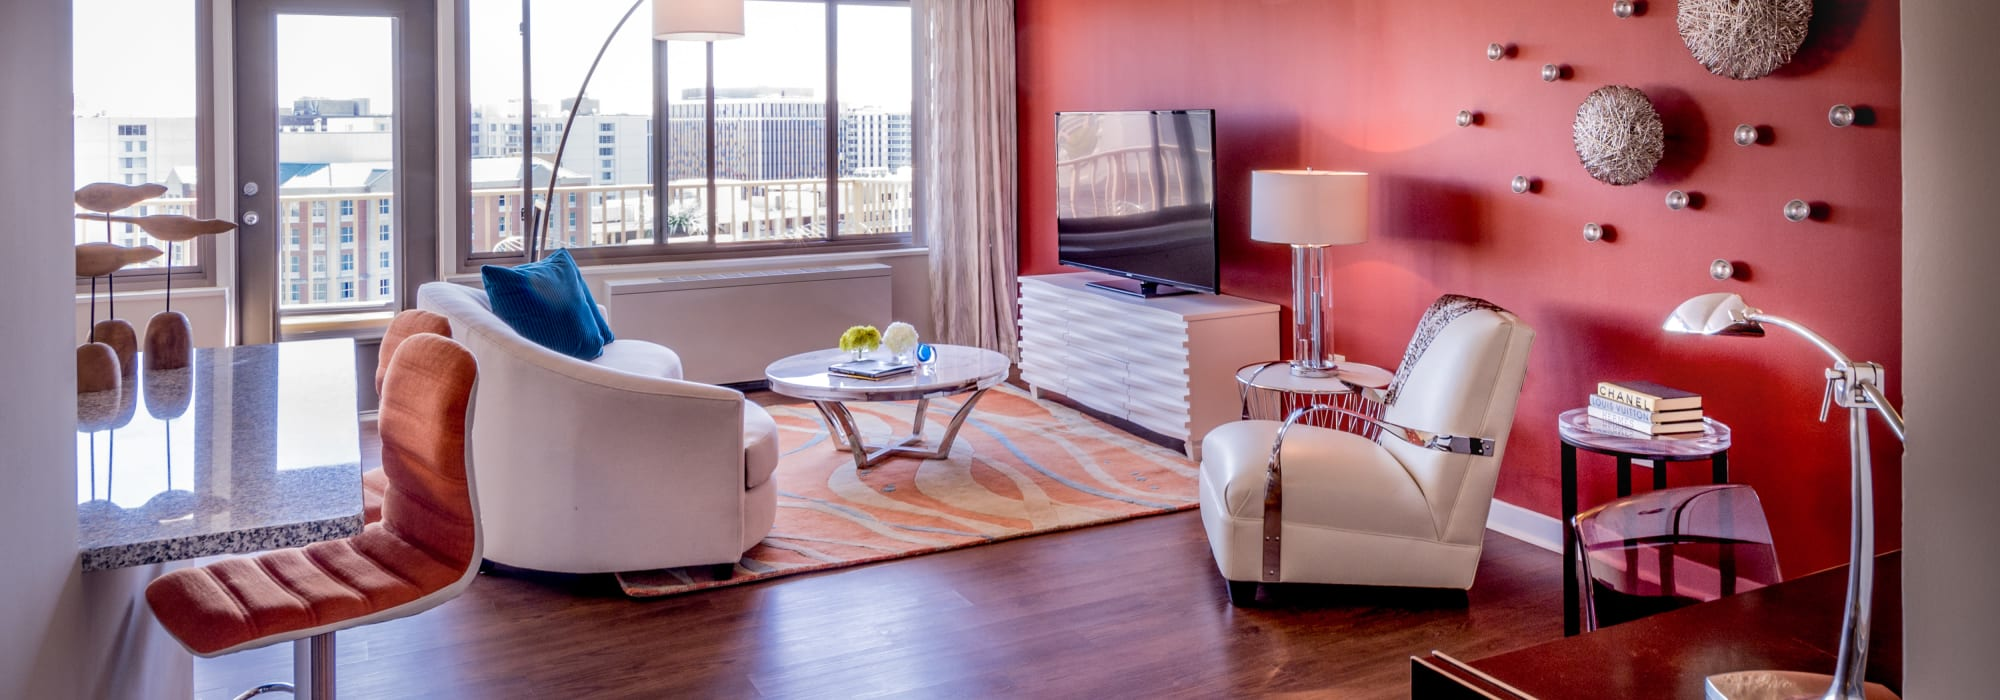 Modern decor living room at Crystal House in Arlington, Virginia